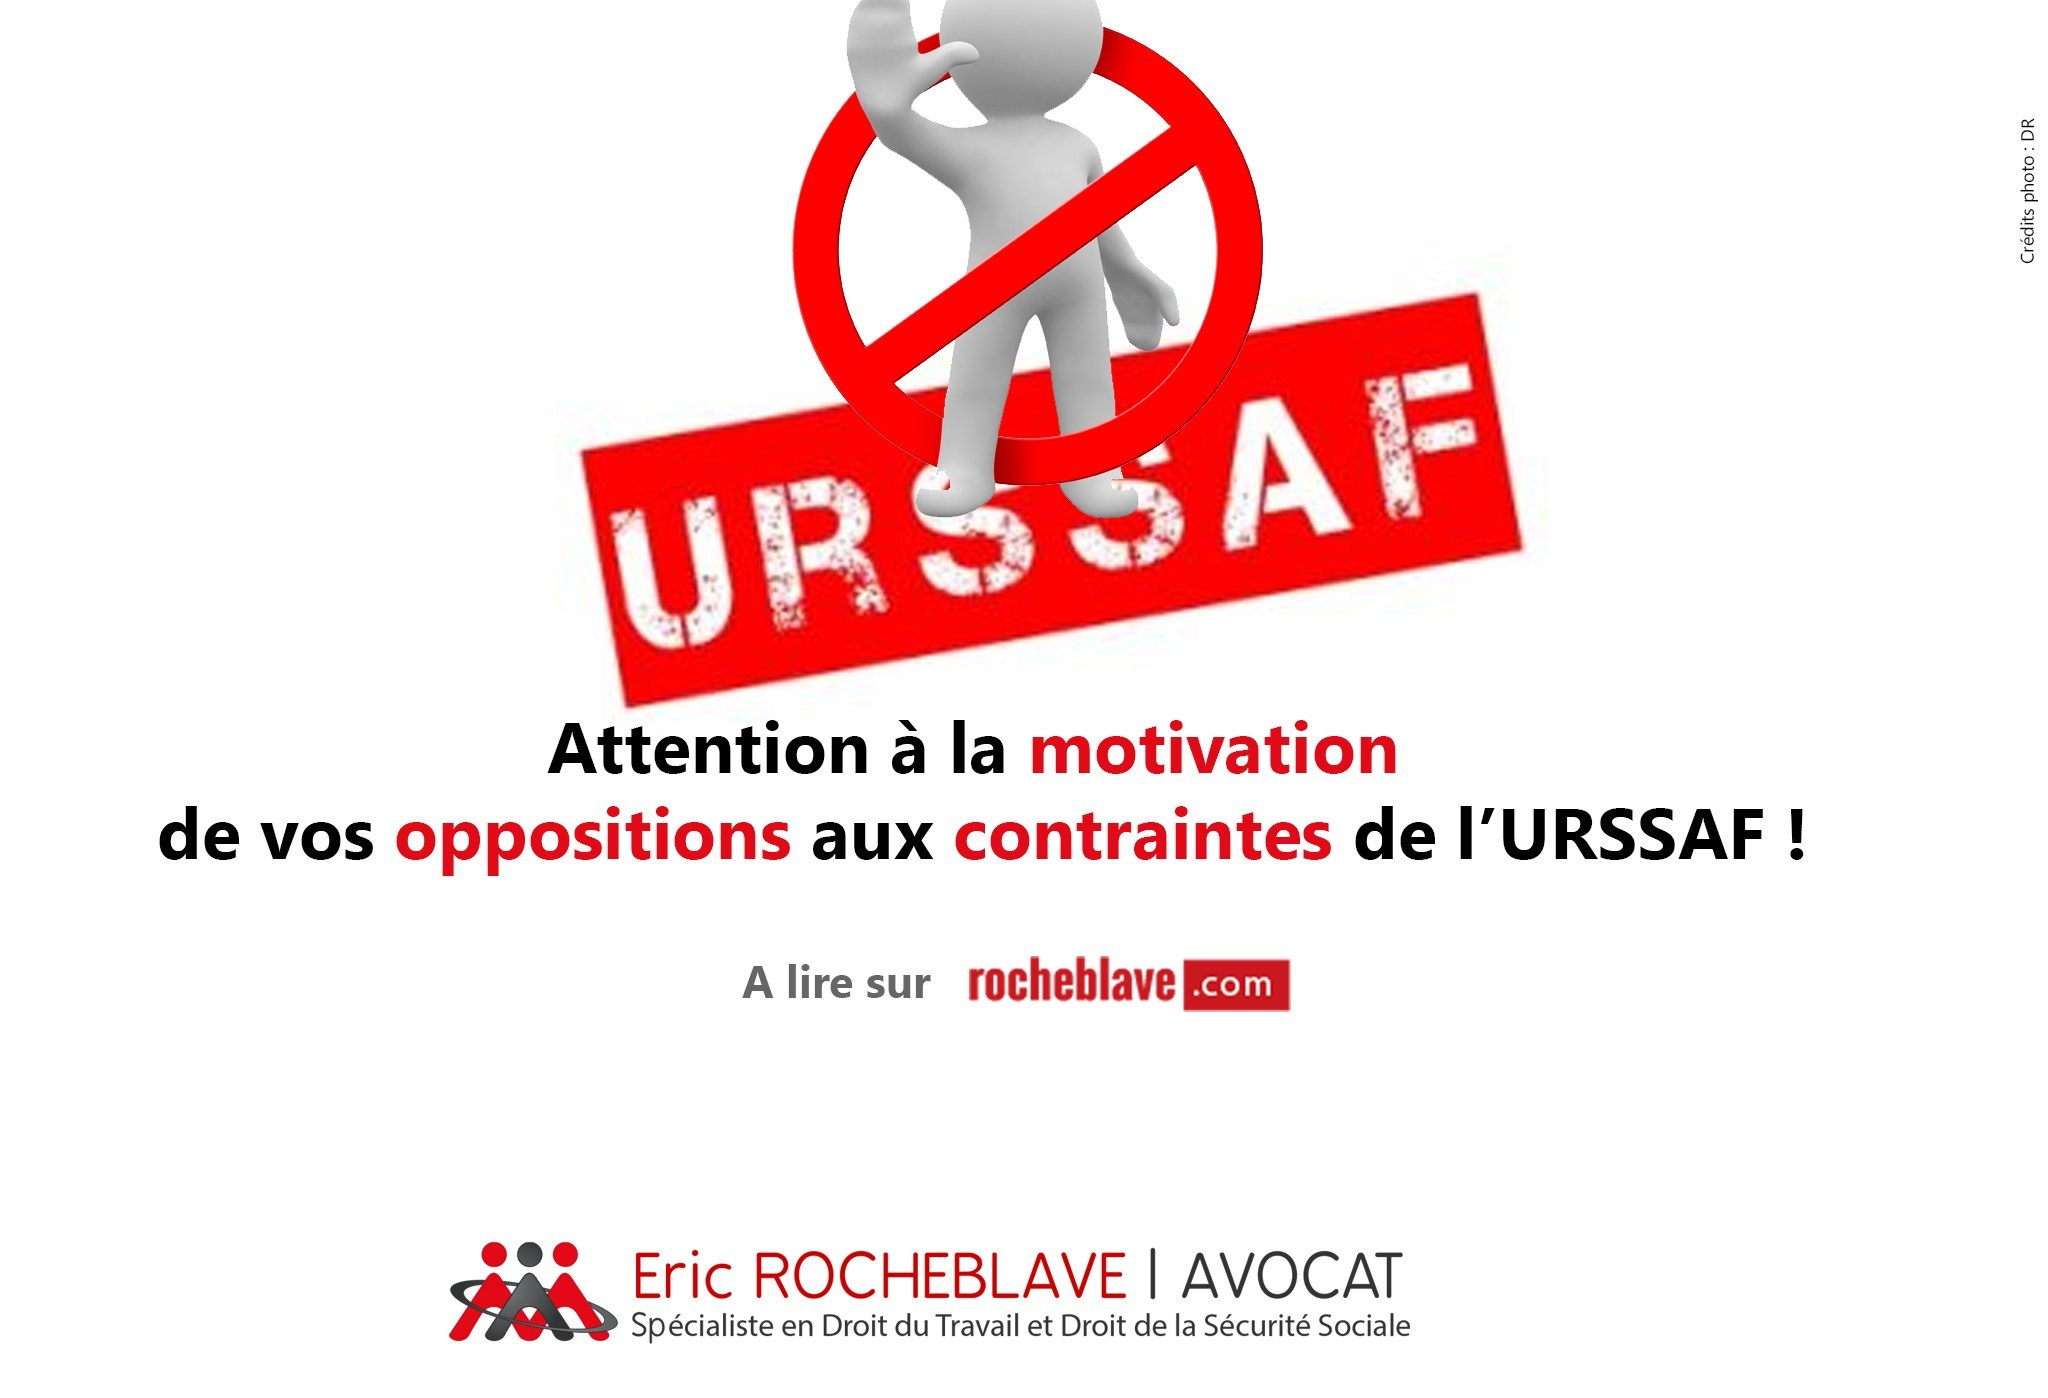 Attention à la motivation de vos oppositions aux contraintes de l'URSSAF !